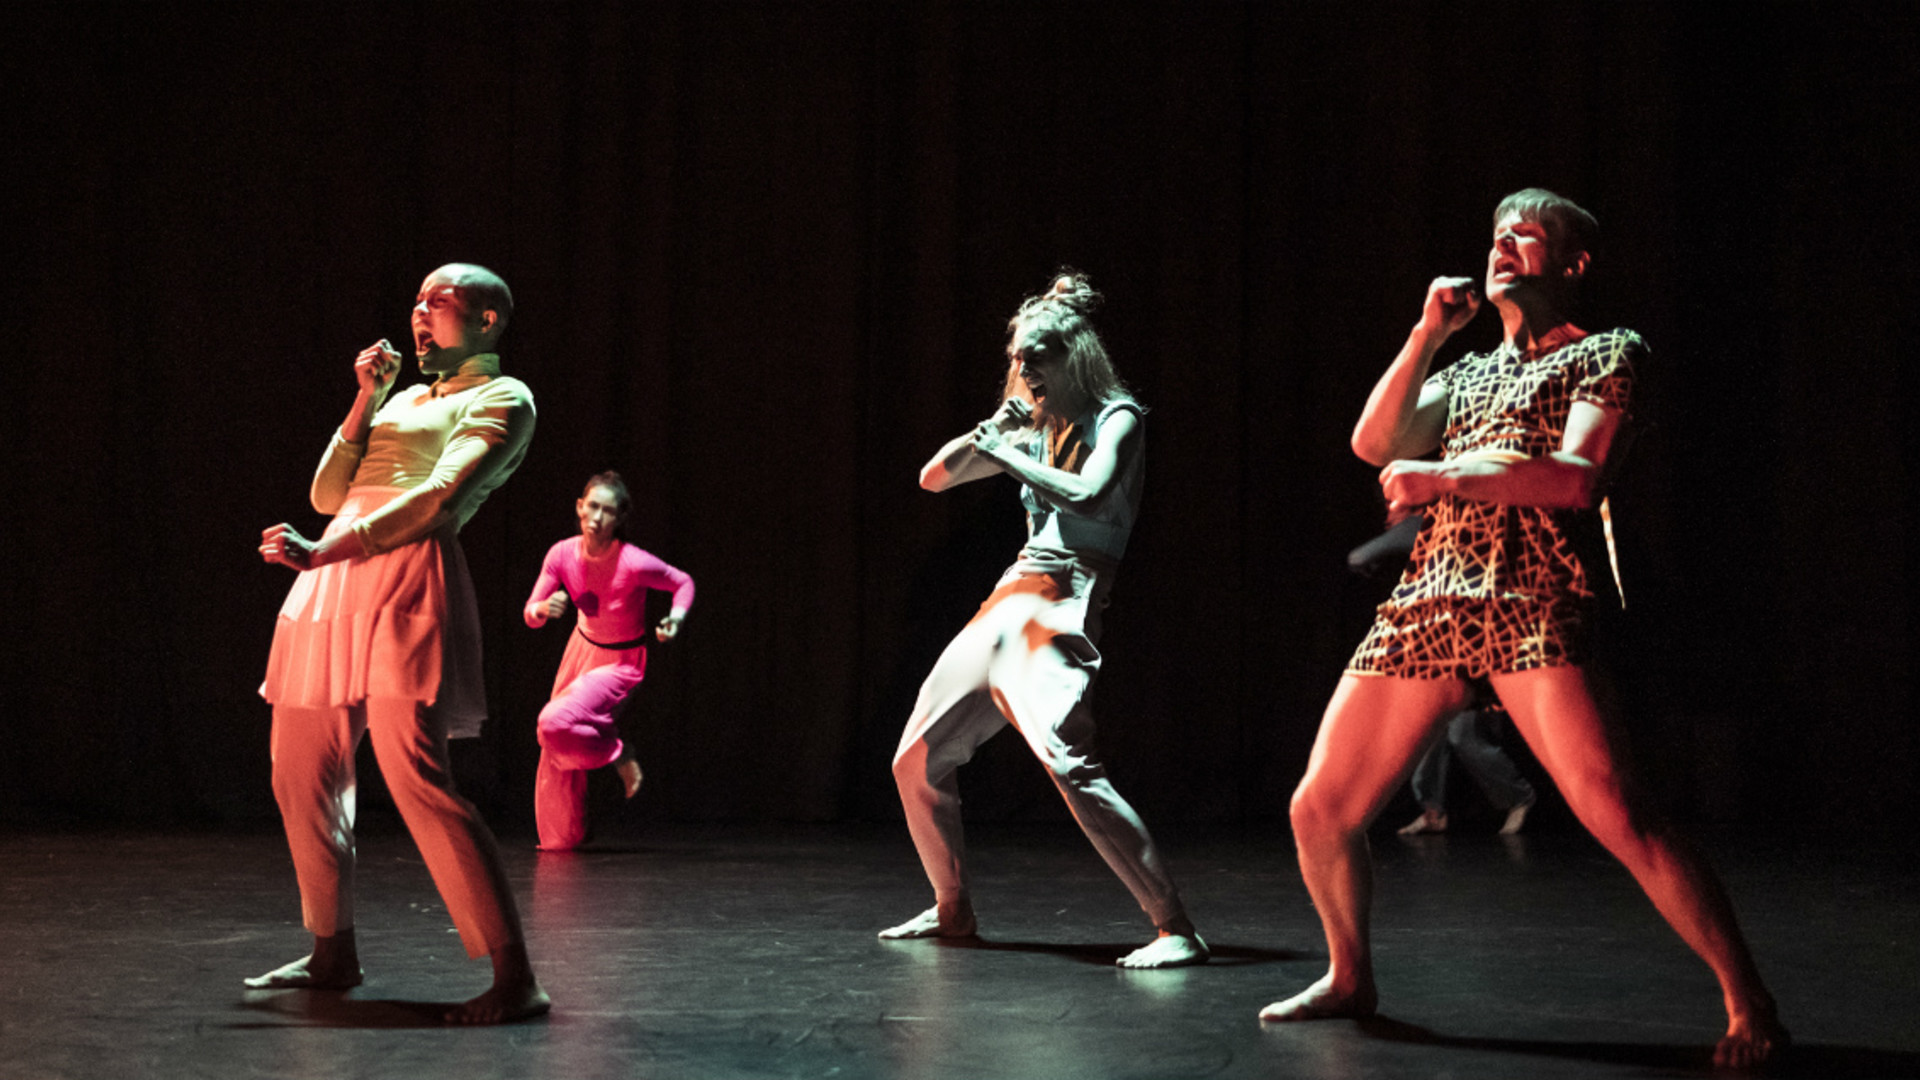 Three dancers hold their arms up, miming singing into microphones while a dancer in the background runs towards them.